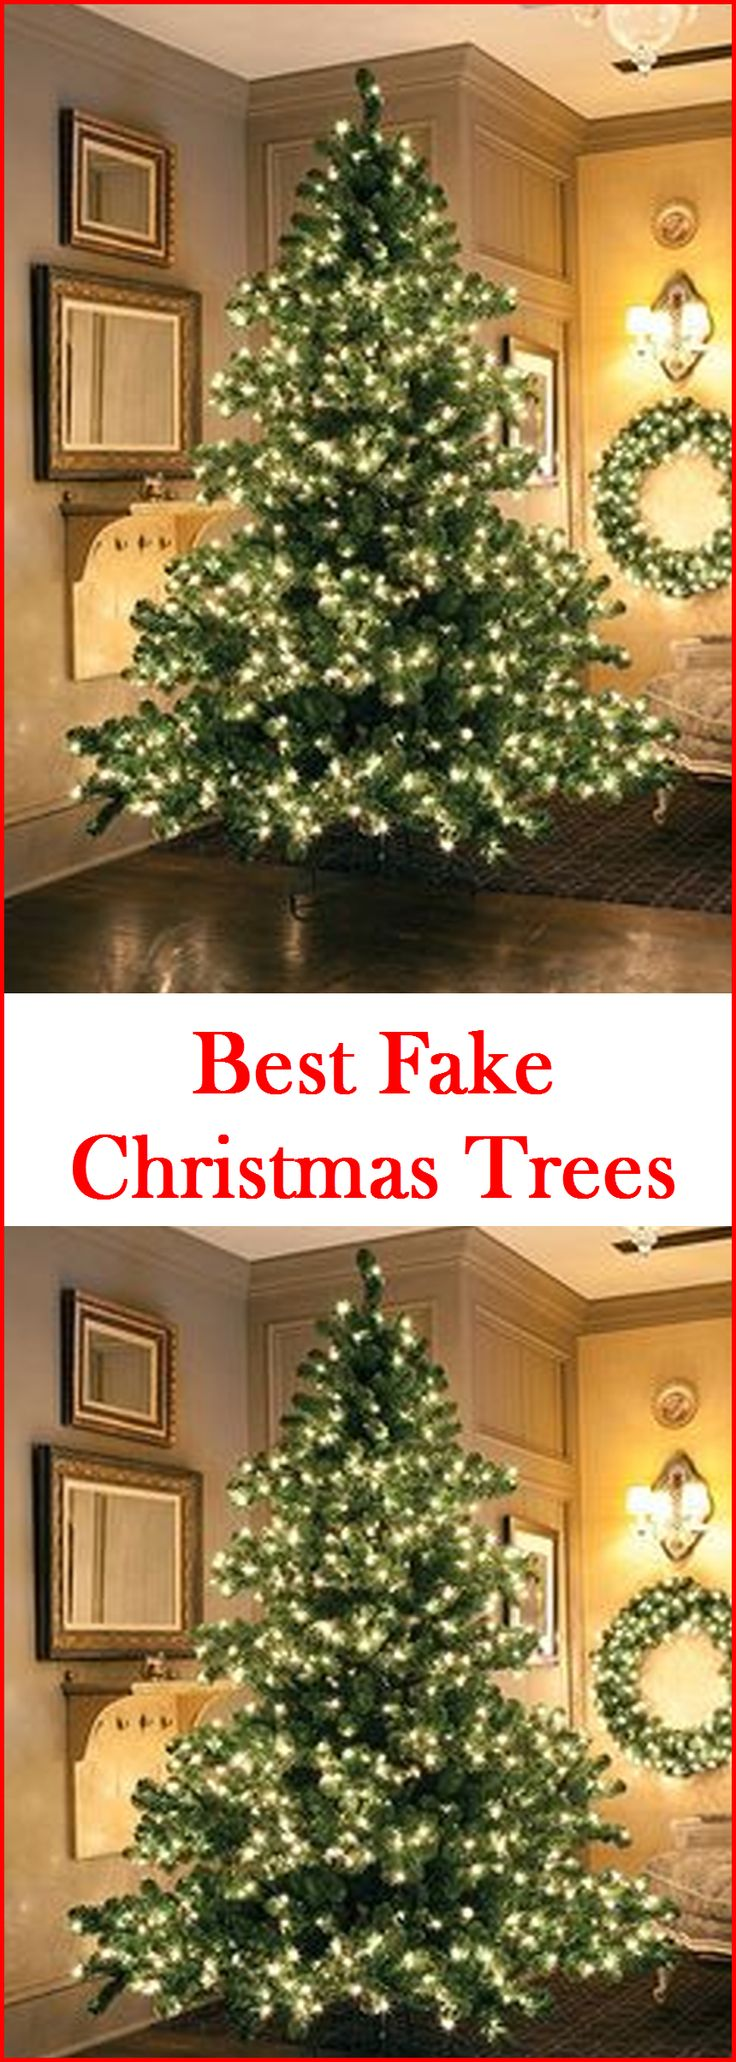 Best Fake Christmas Trees That Look Real.